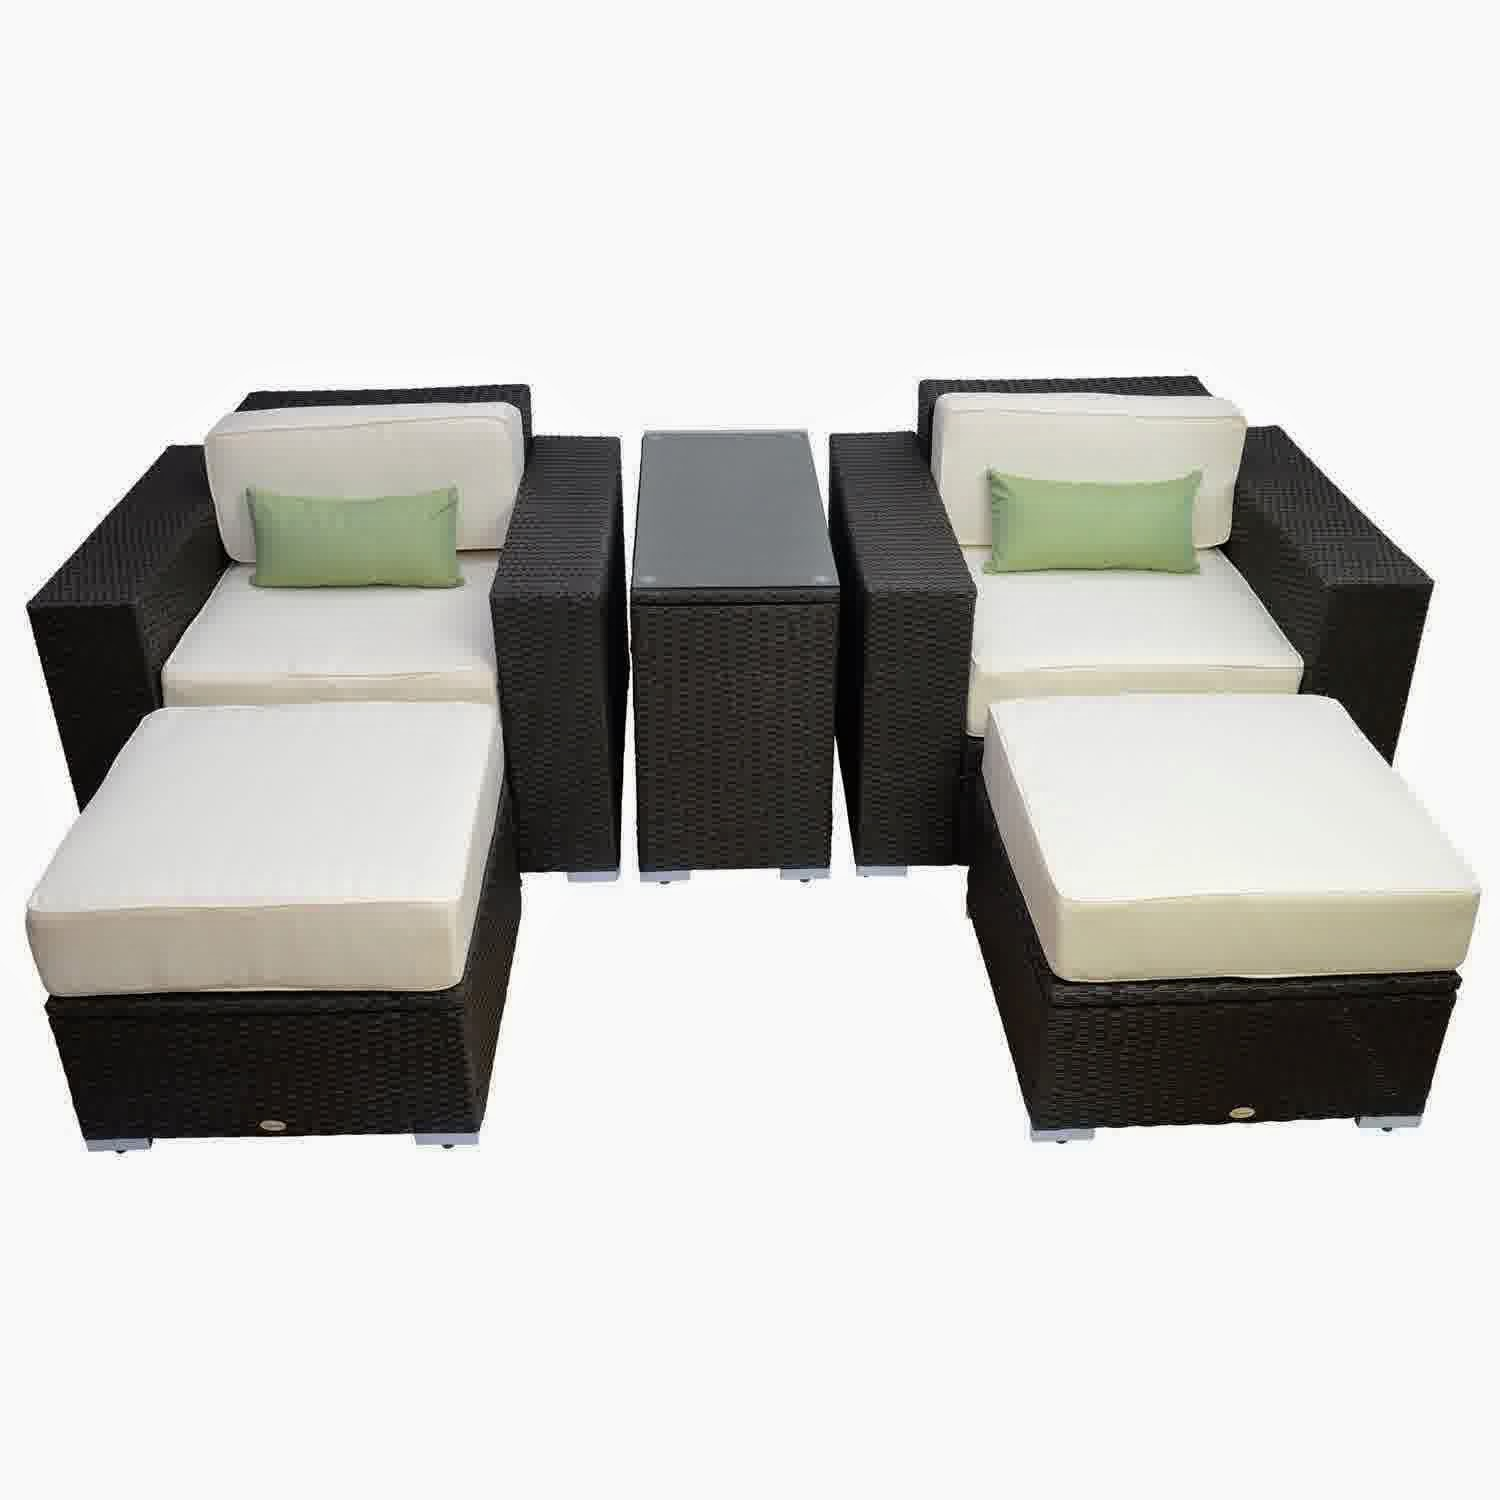 the best of 30 outdoor wicker lounge chair. Black Bedroom Furniture Sets. Home Design Ideas